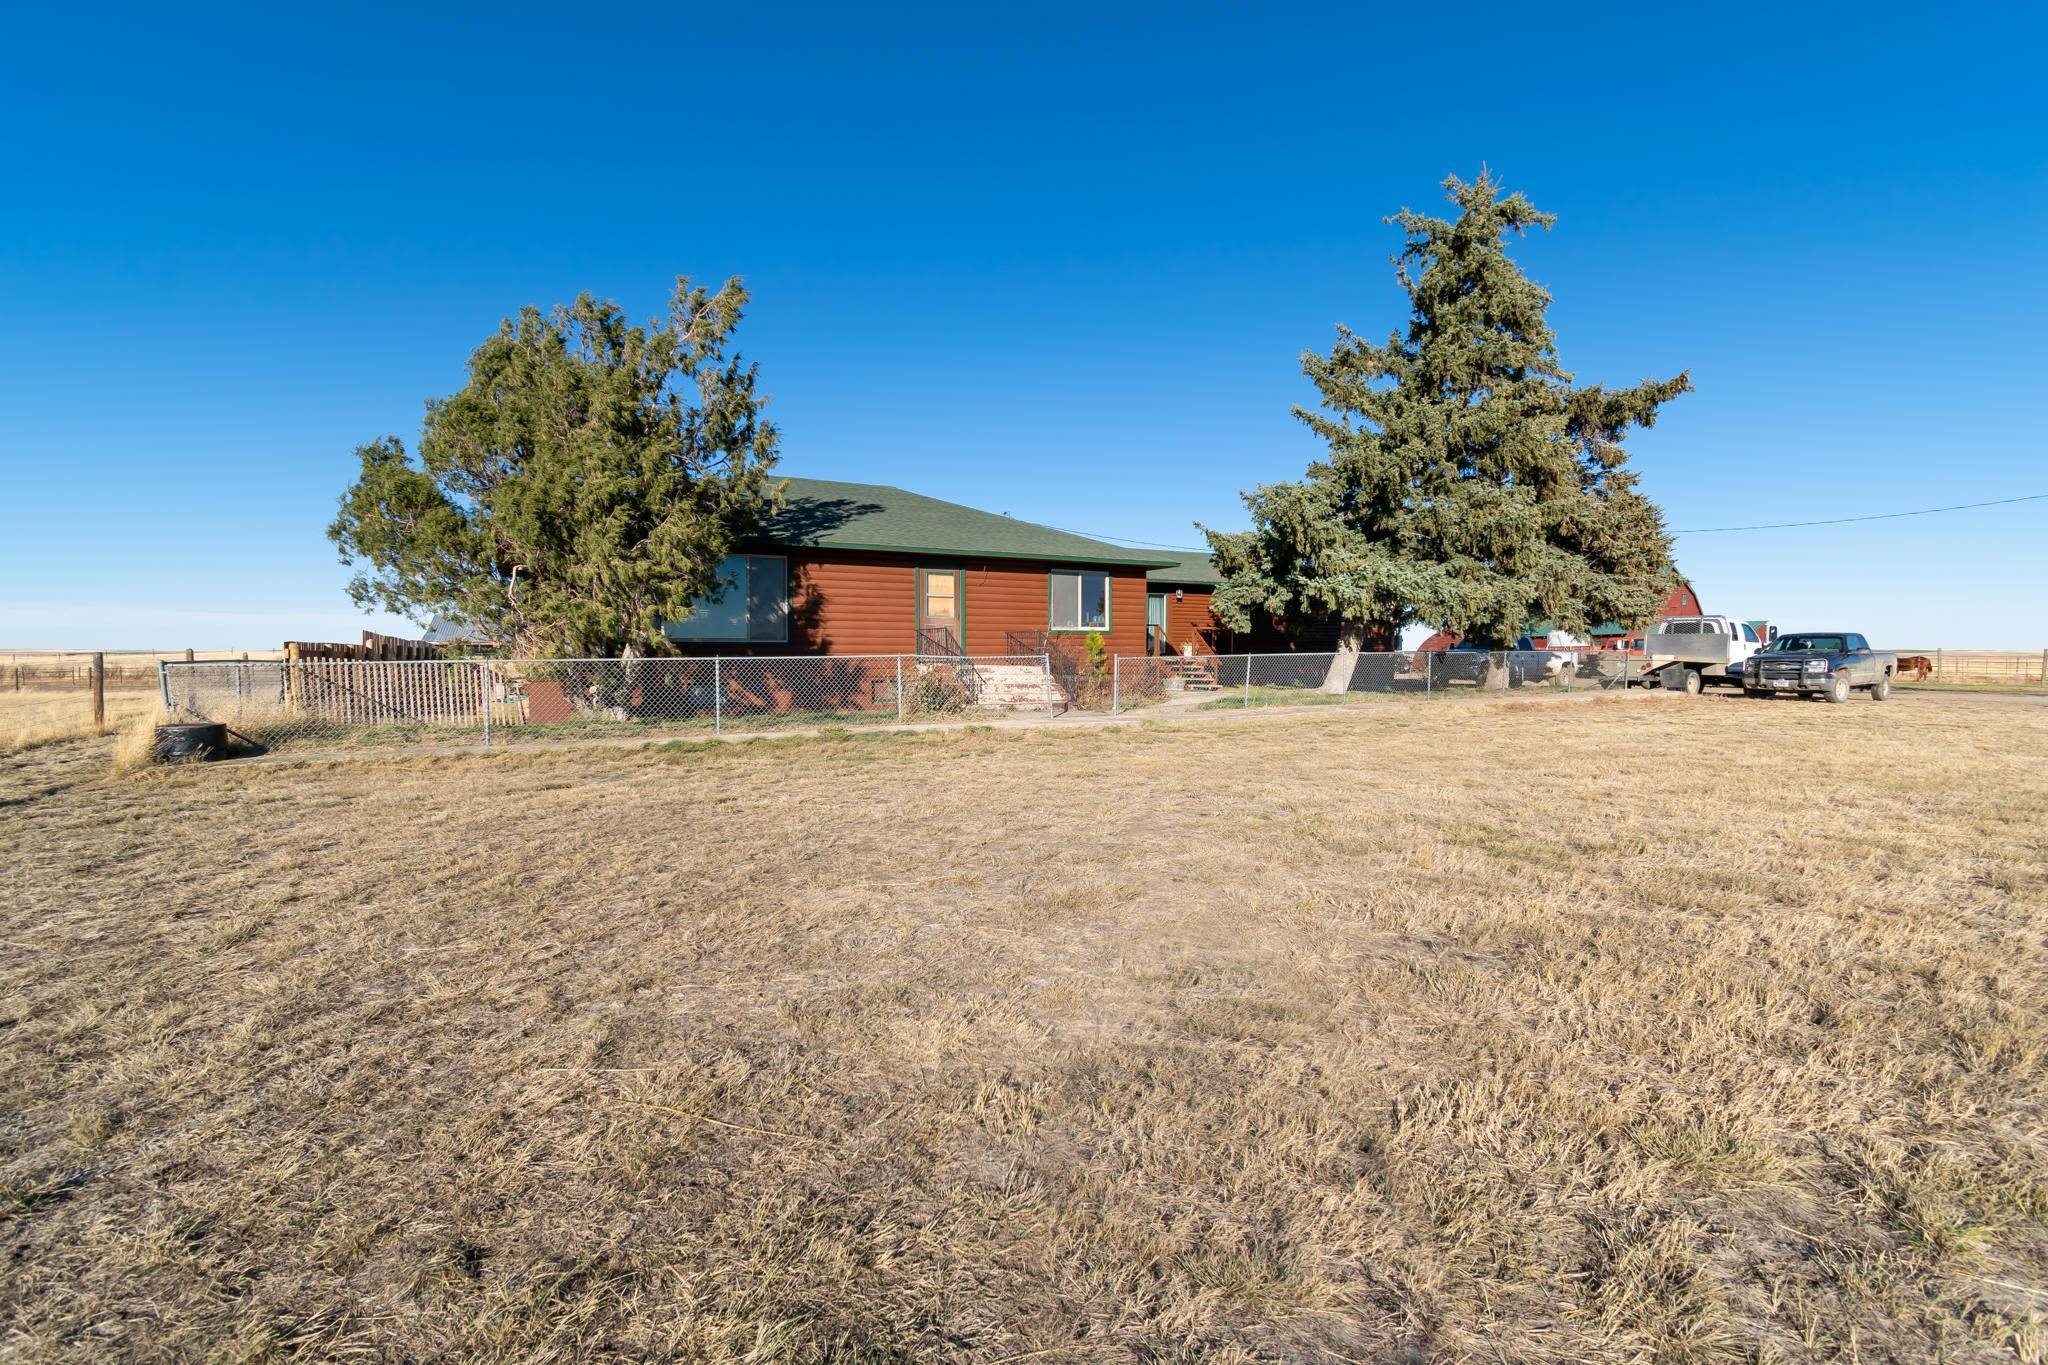 Farm / Agriculture for Sale at Address Not Available Dutton, Montana 59433 United States